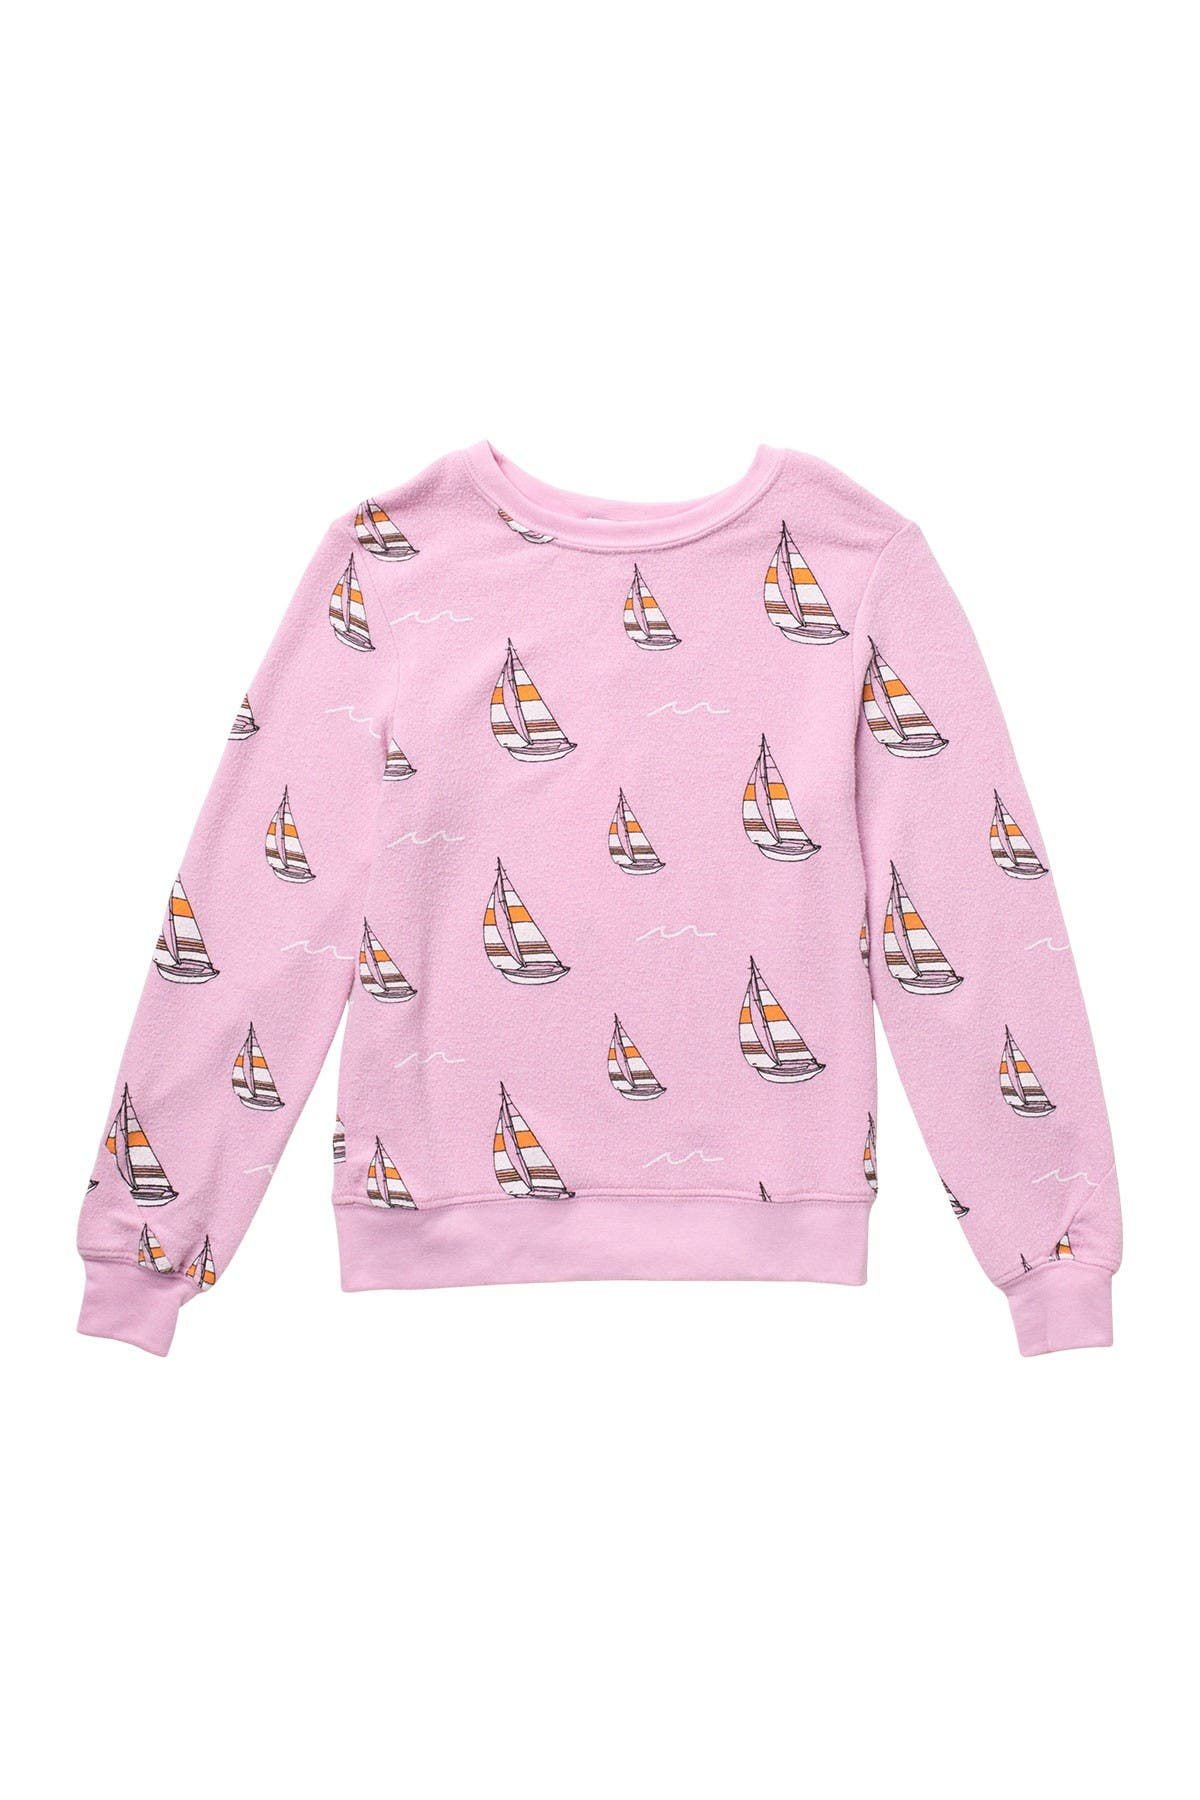 Image of WILDFOX Sail On Knit Pullover